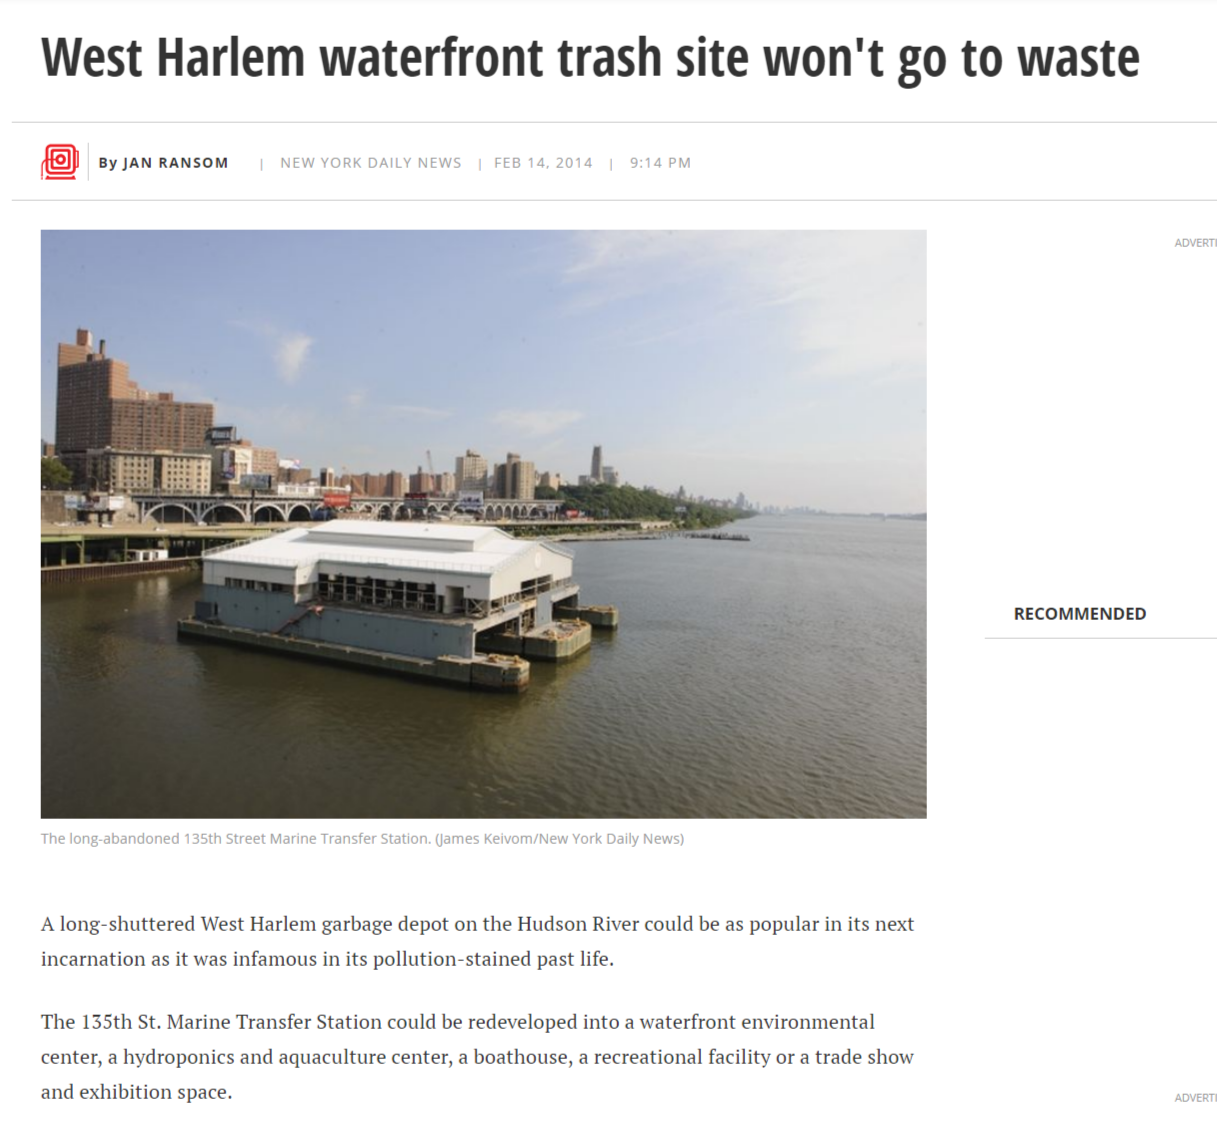 https://www.nydailynews.com/new-york/manhattan/trash-treasure-article-1.1615167